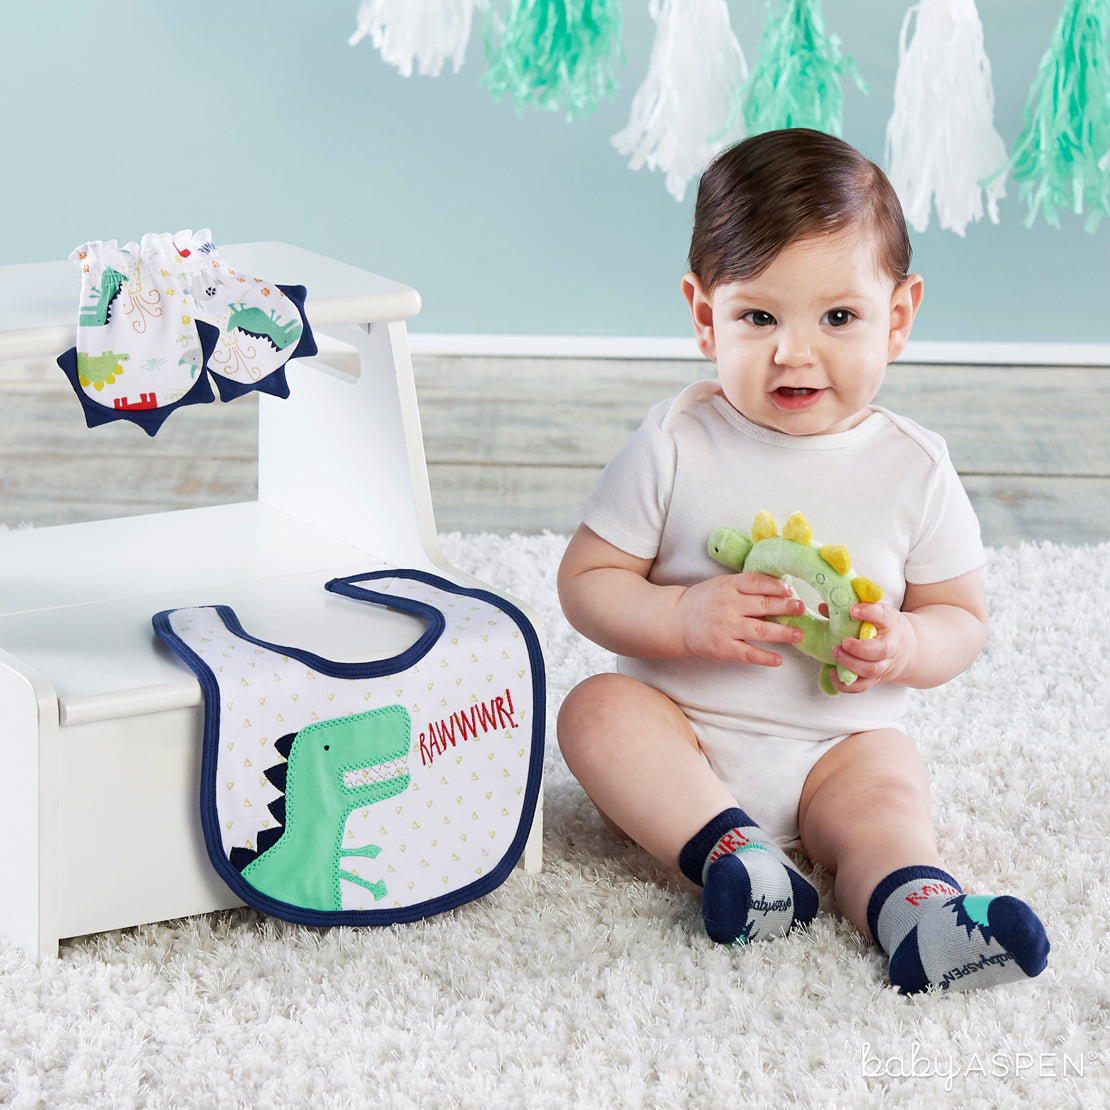 Dino Baby Gift Set With Baby | Dino-mite Gifts For Baby | Baby Aspen